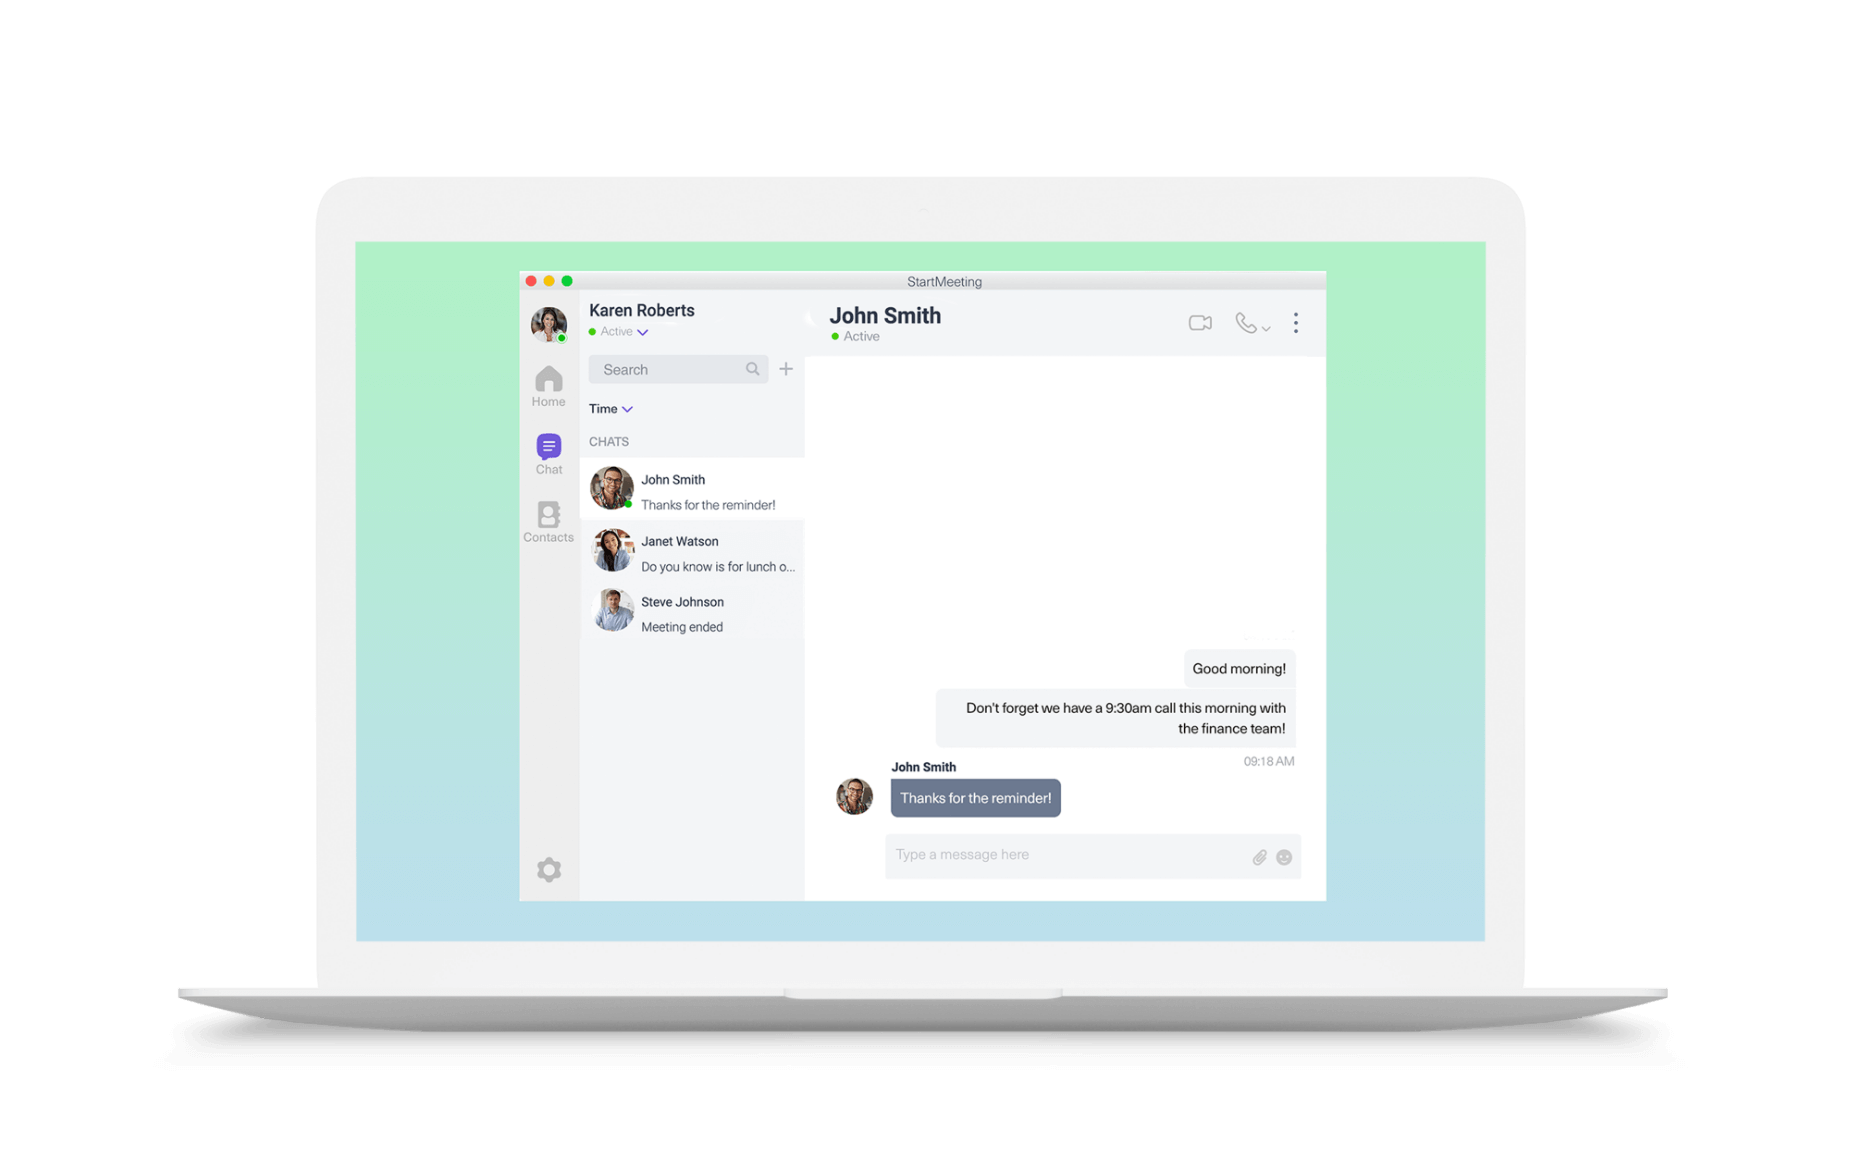 Laptop with Startmeeting team chat